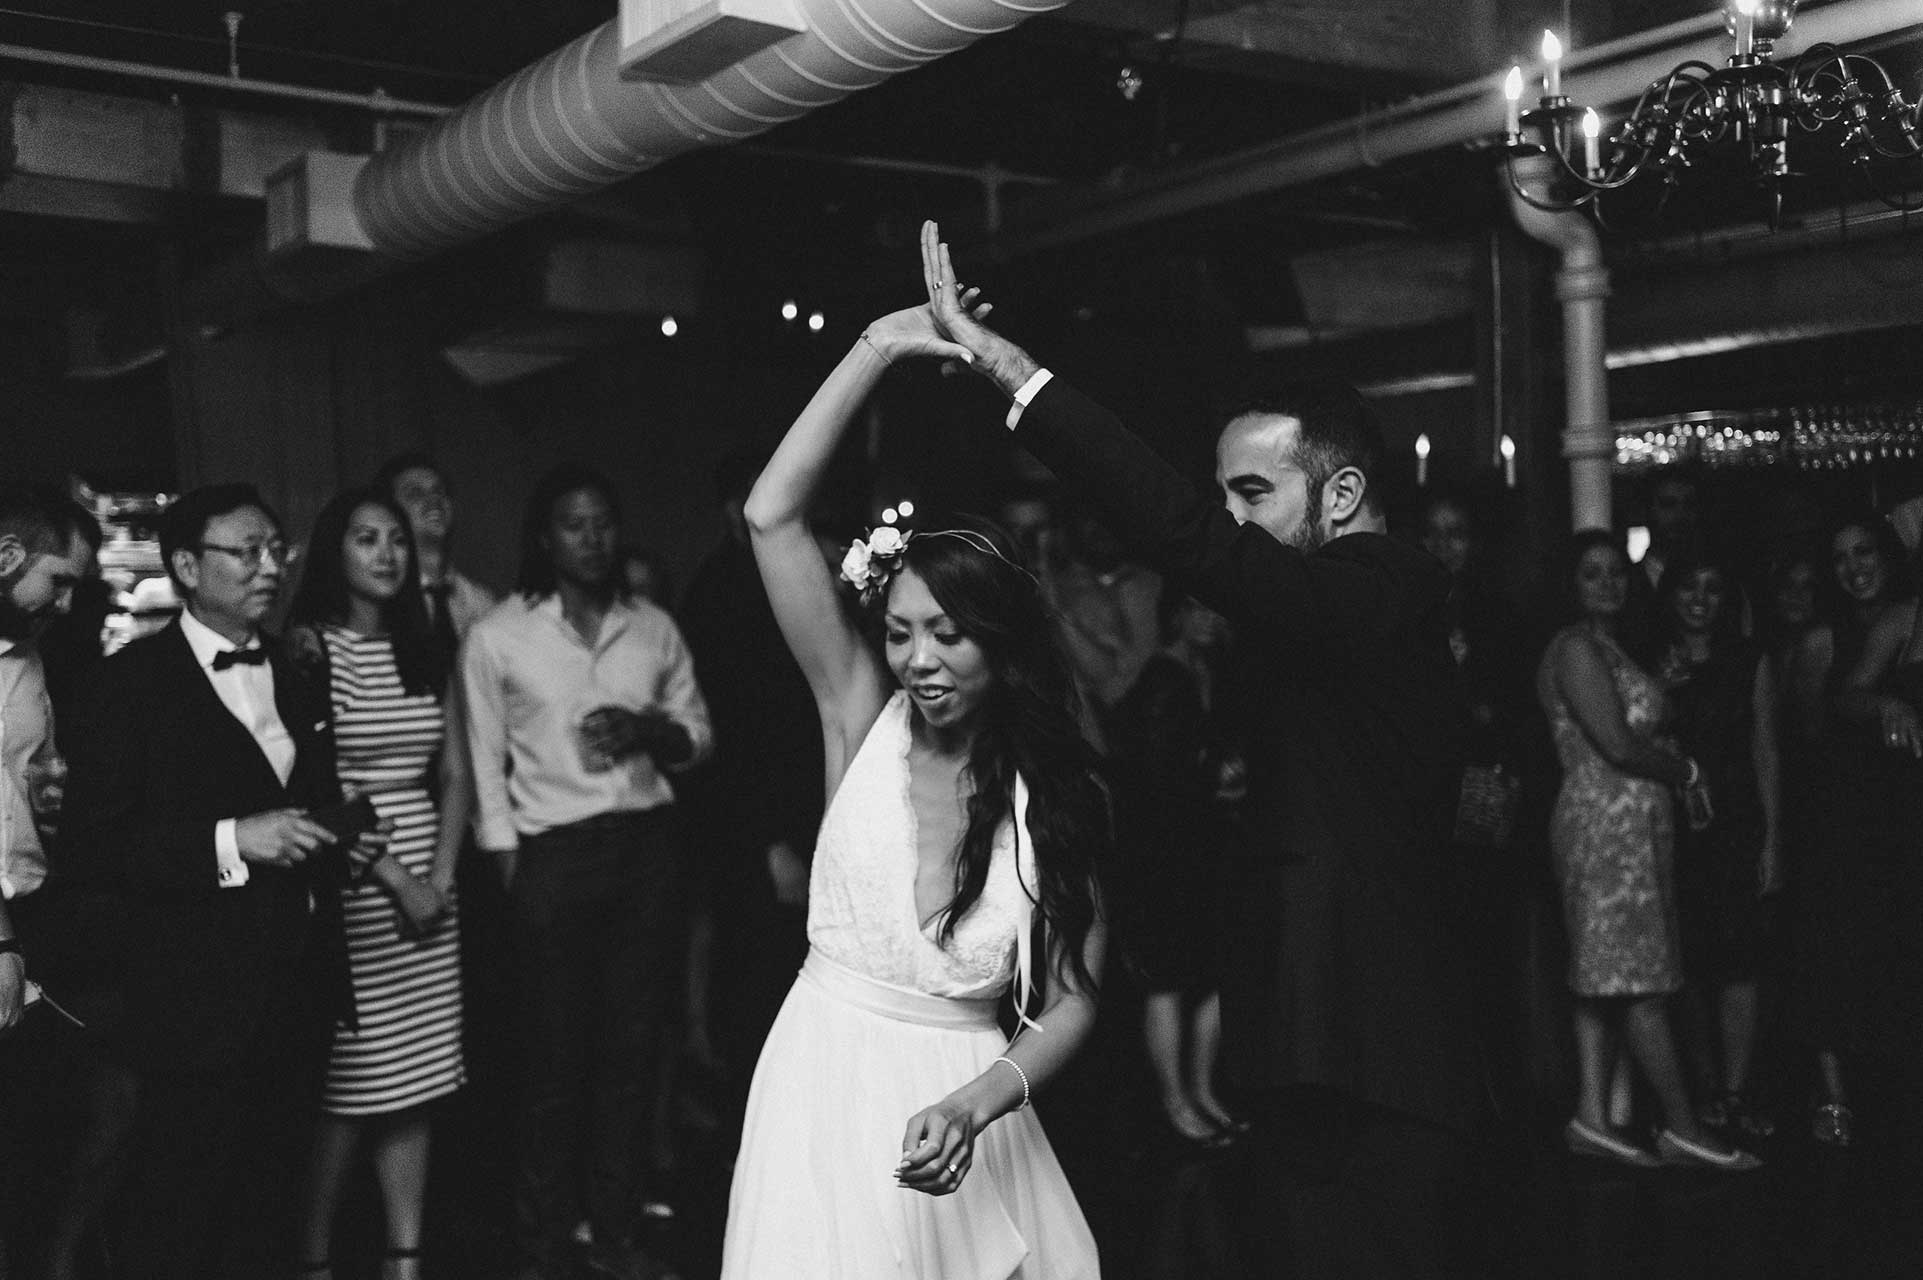 Wedding Venues Toronto - Wedding Dance